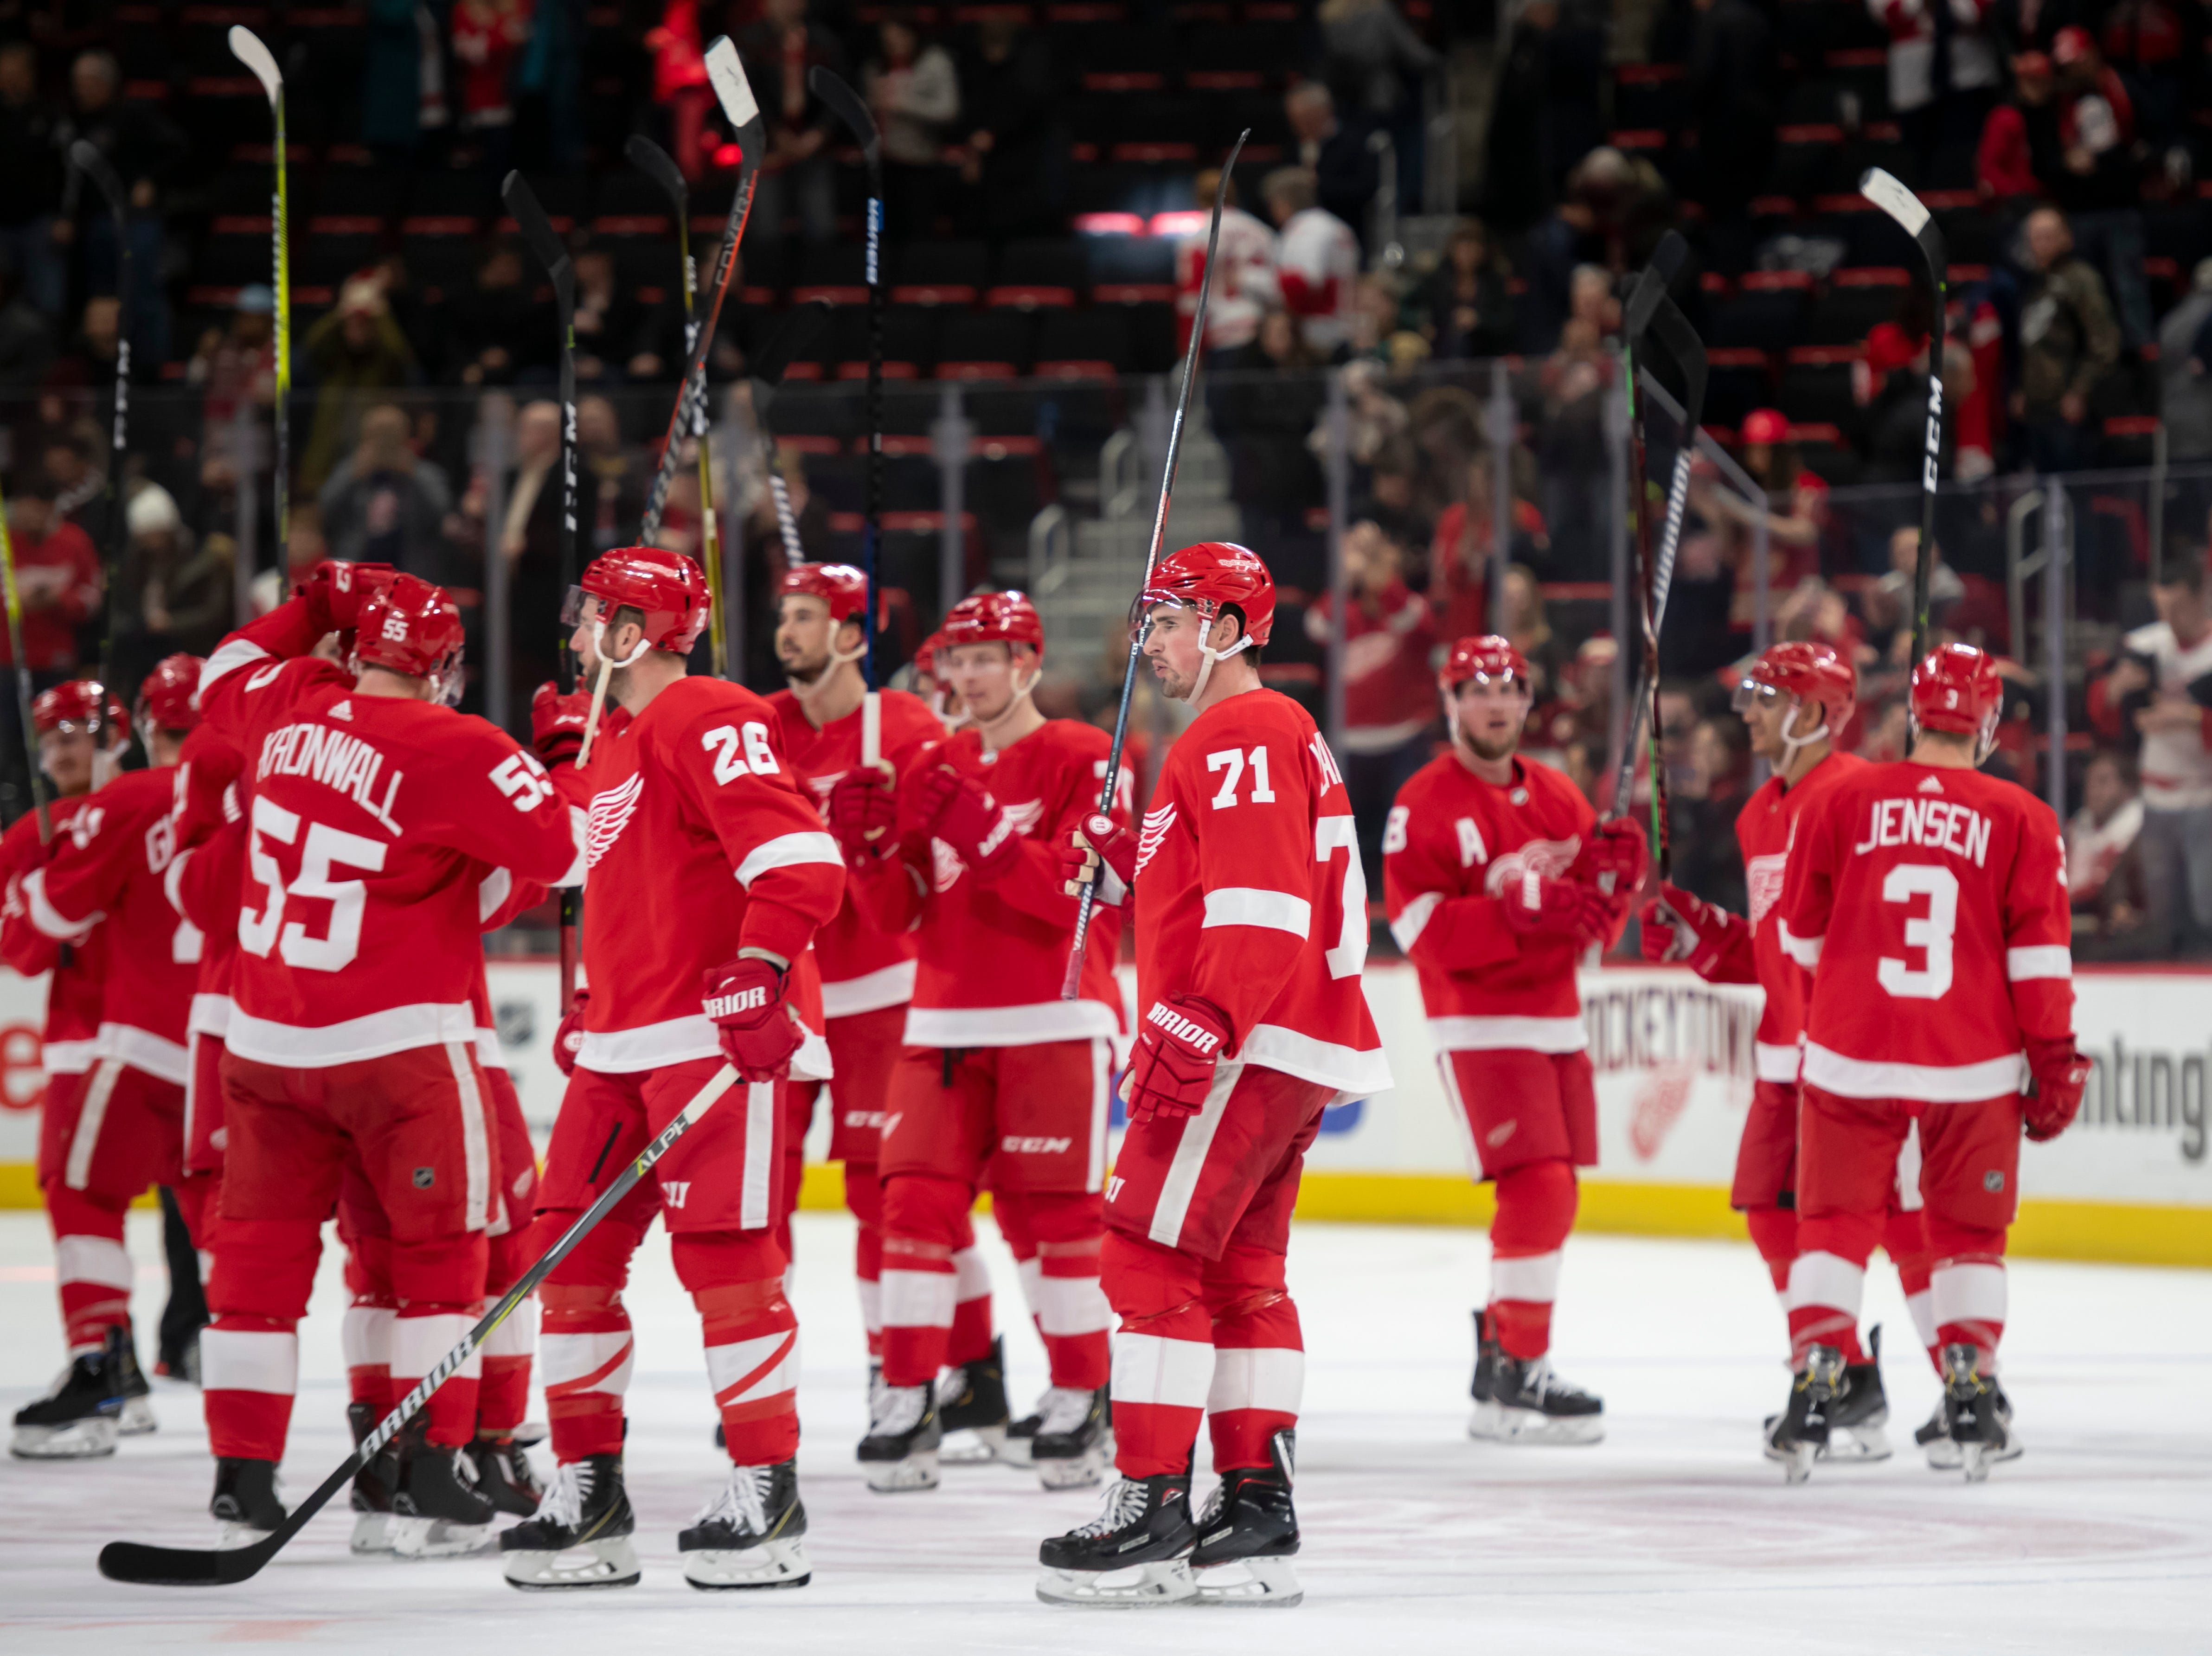 The Red Wings celebrate their win after the game.